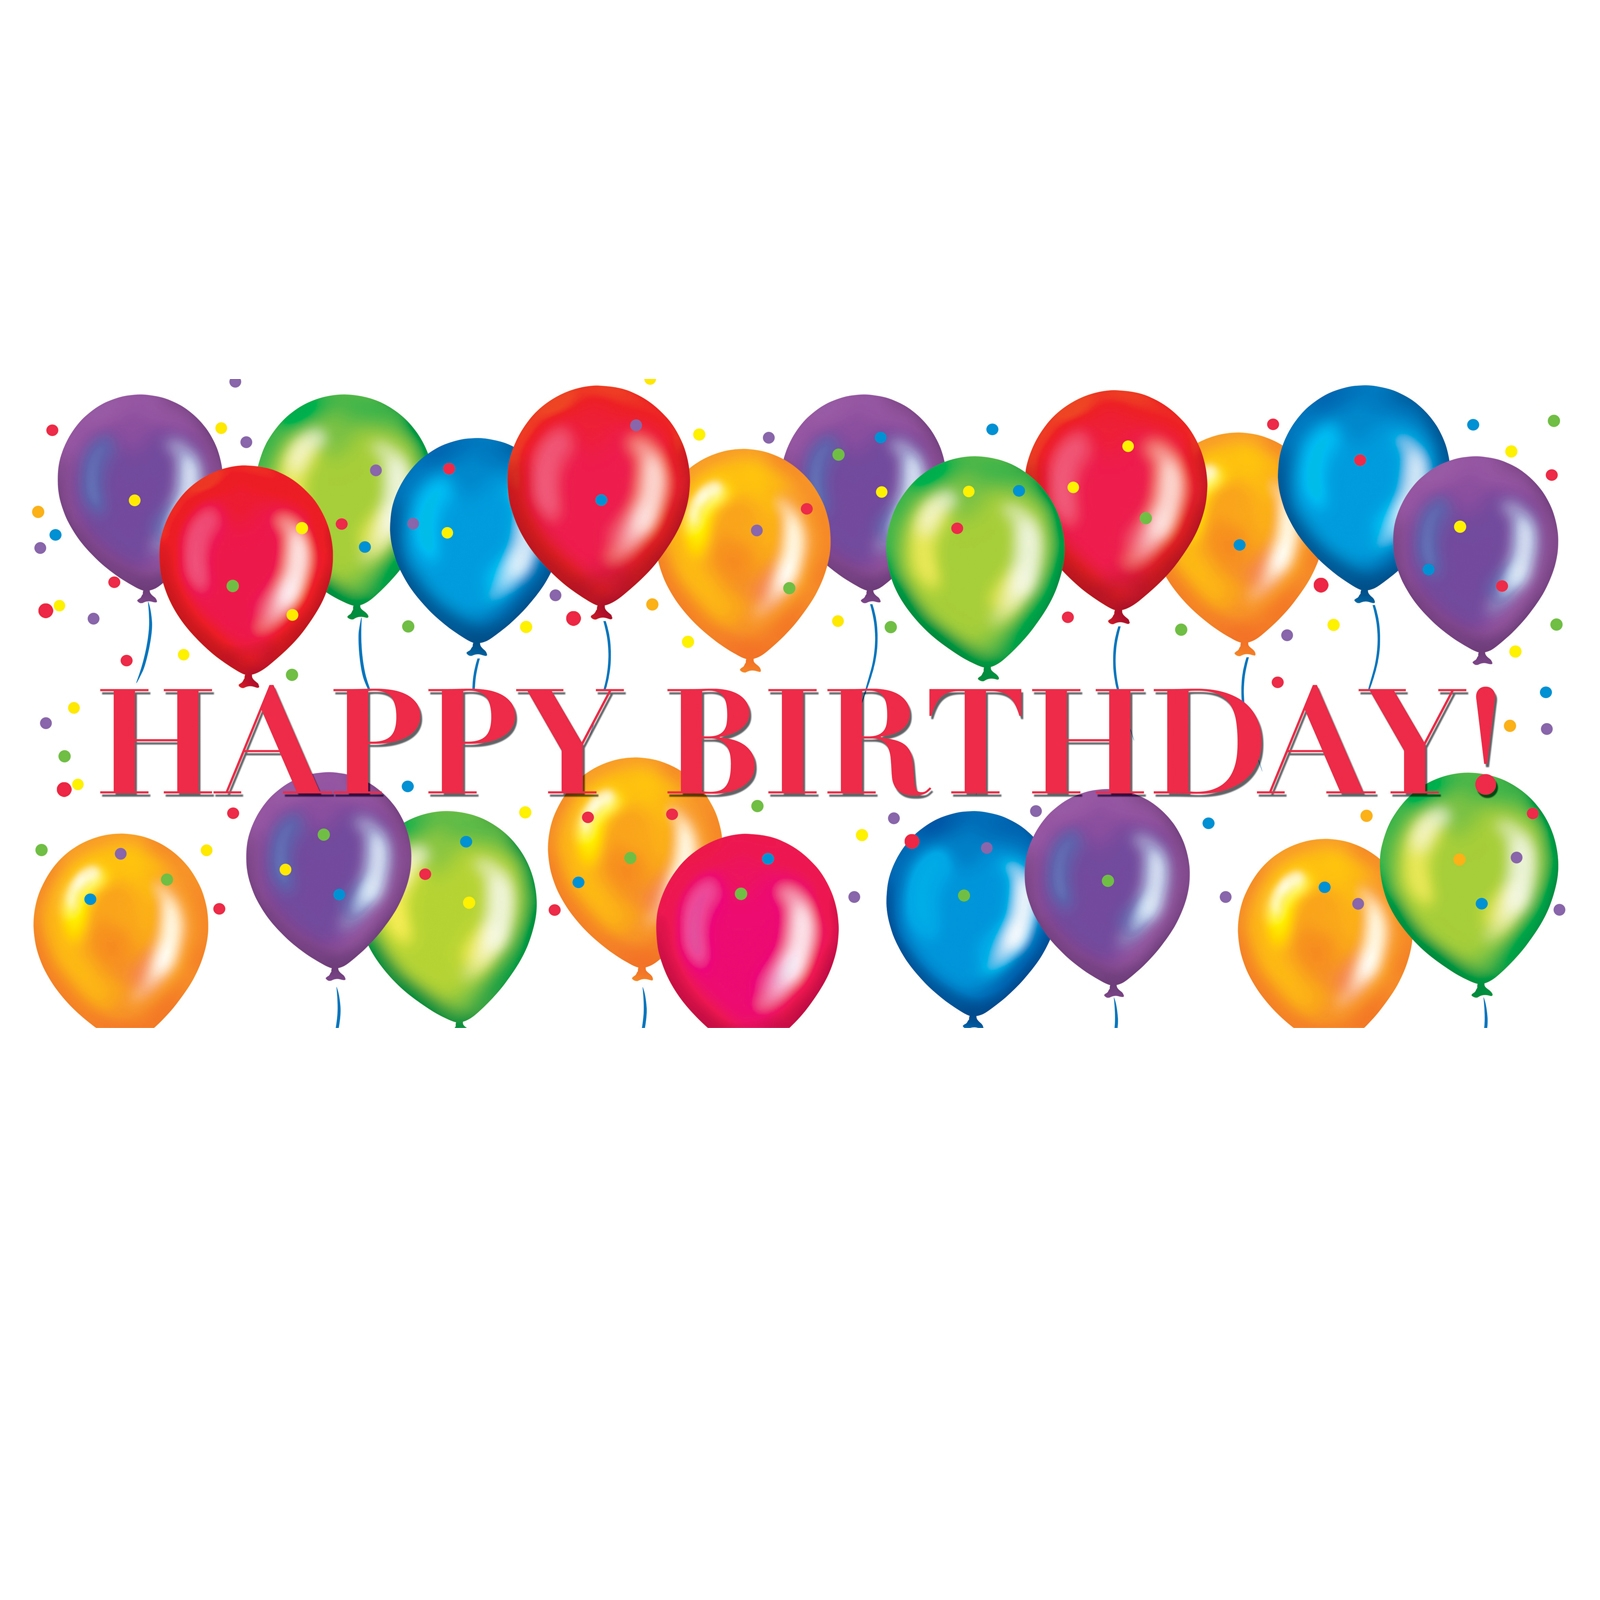 1600x1600 Best Of Free Birthday Clipart Gallery